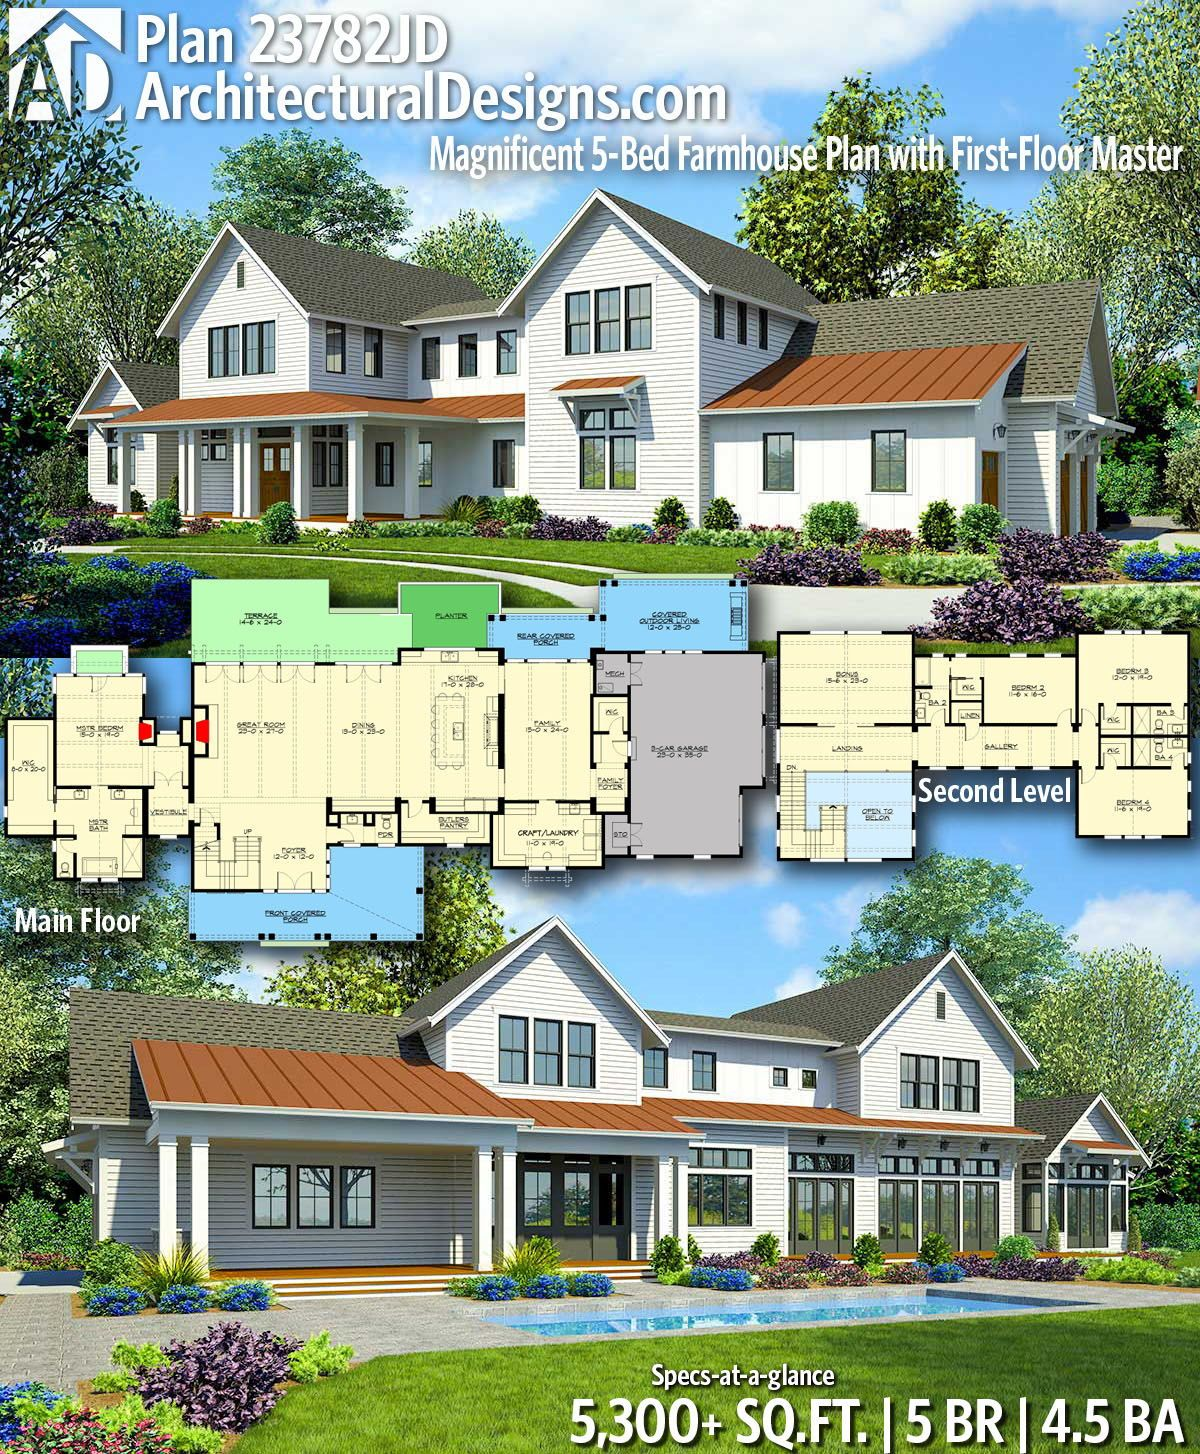 Plan 23782JD: Sprawling Modern Farmhouse Plan with First ...